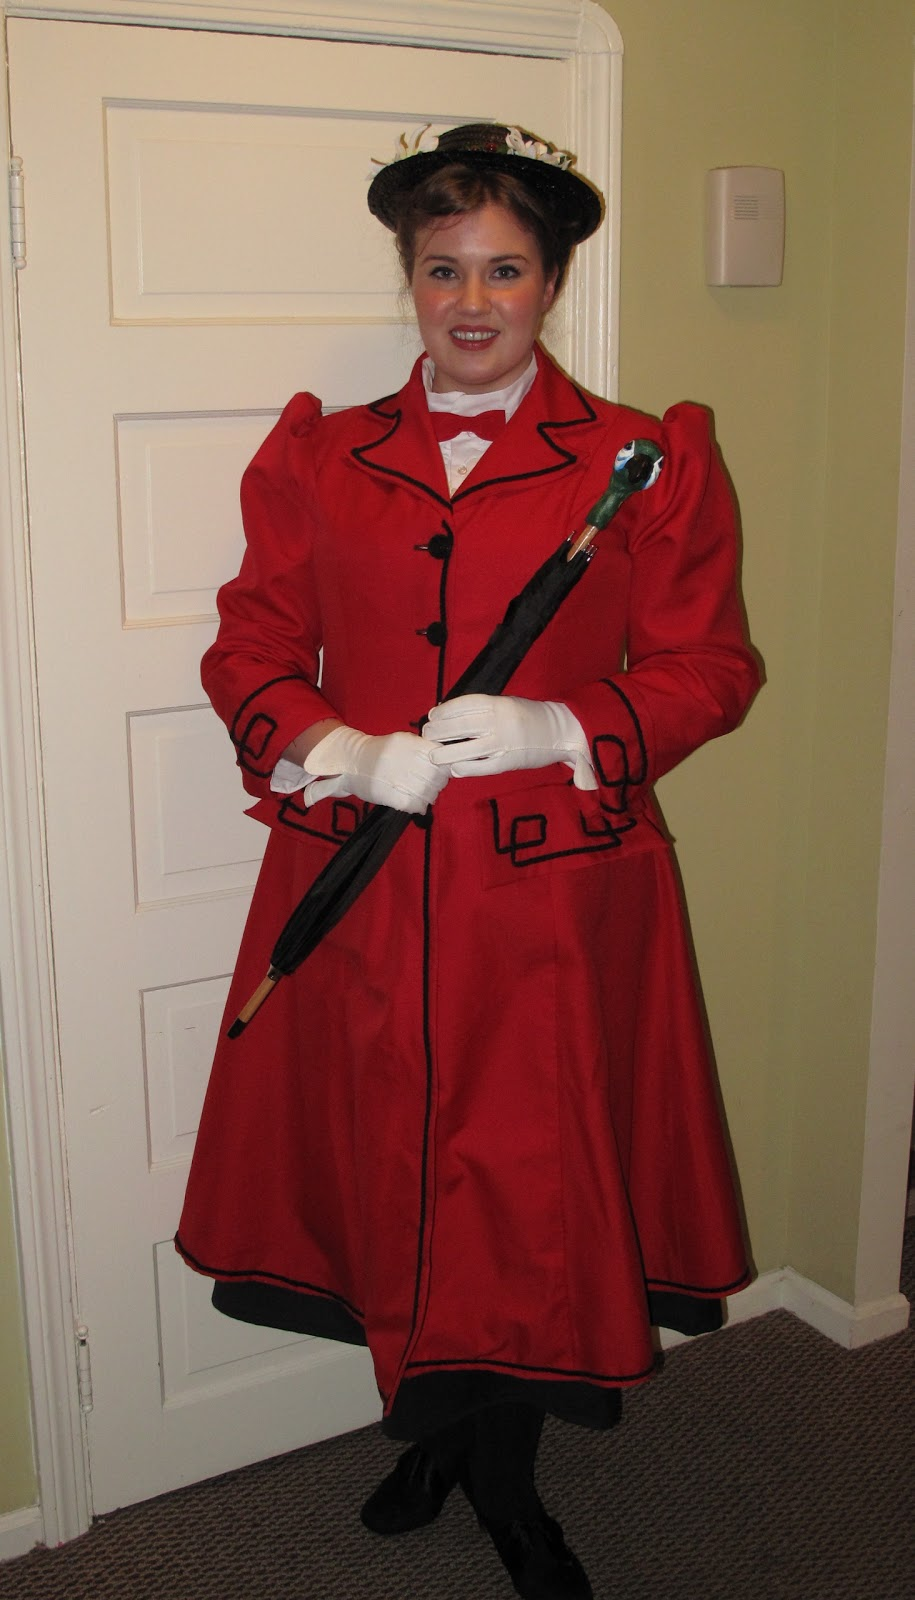 Mary Poppins Halloween Costume Pinterest my Mary Poppins Costume Was